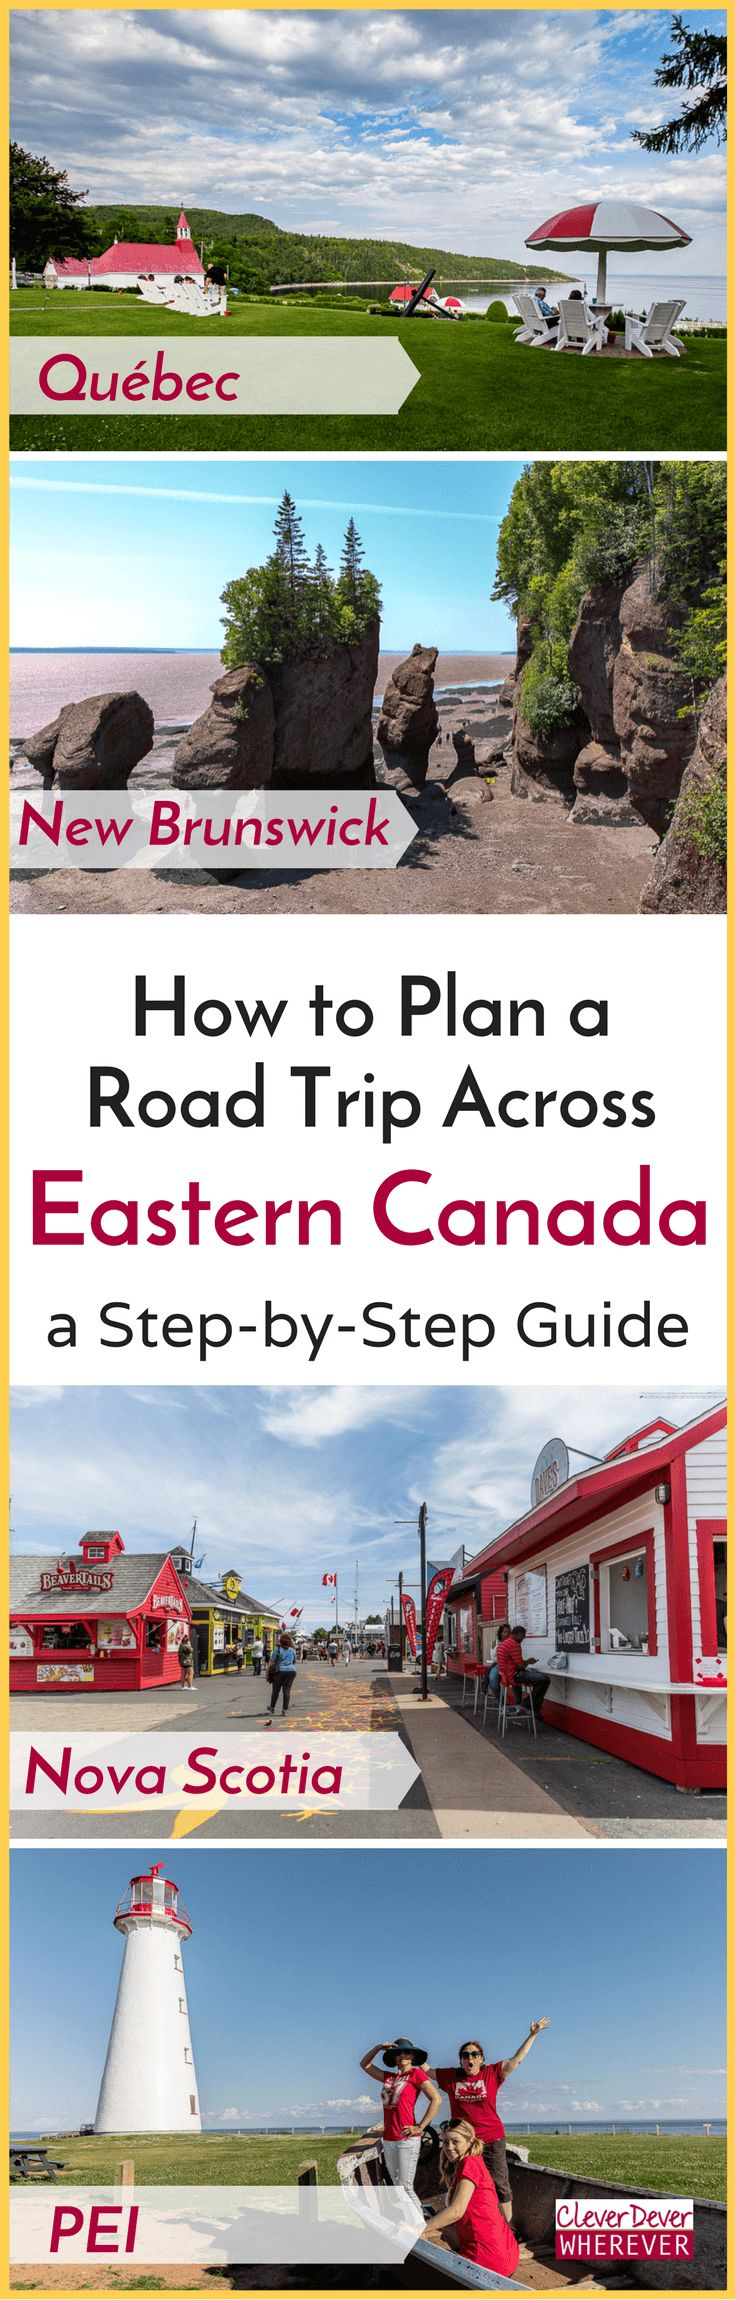 Thinking about a Canada road trip? This 14 Day Itinerary takes you from Montreal to PEI. Download the free guide!